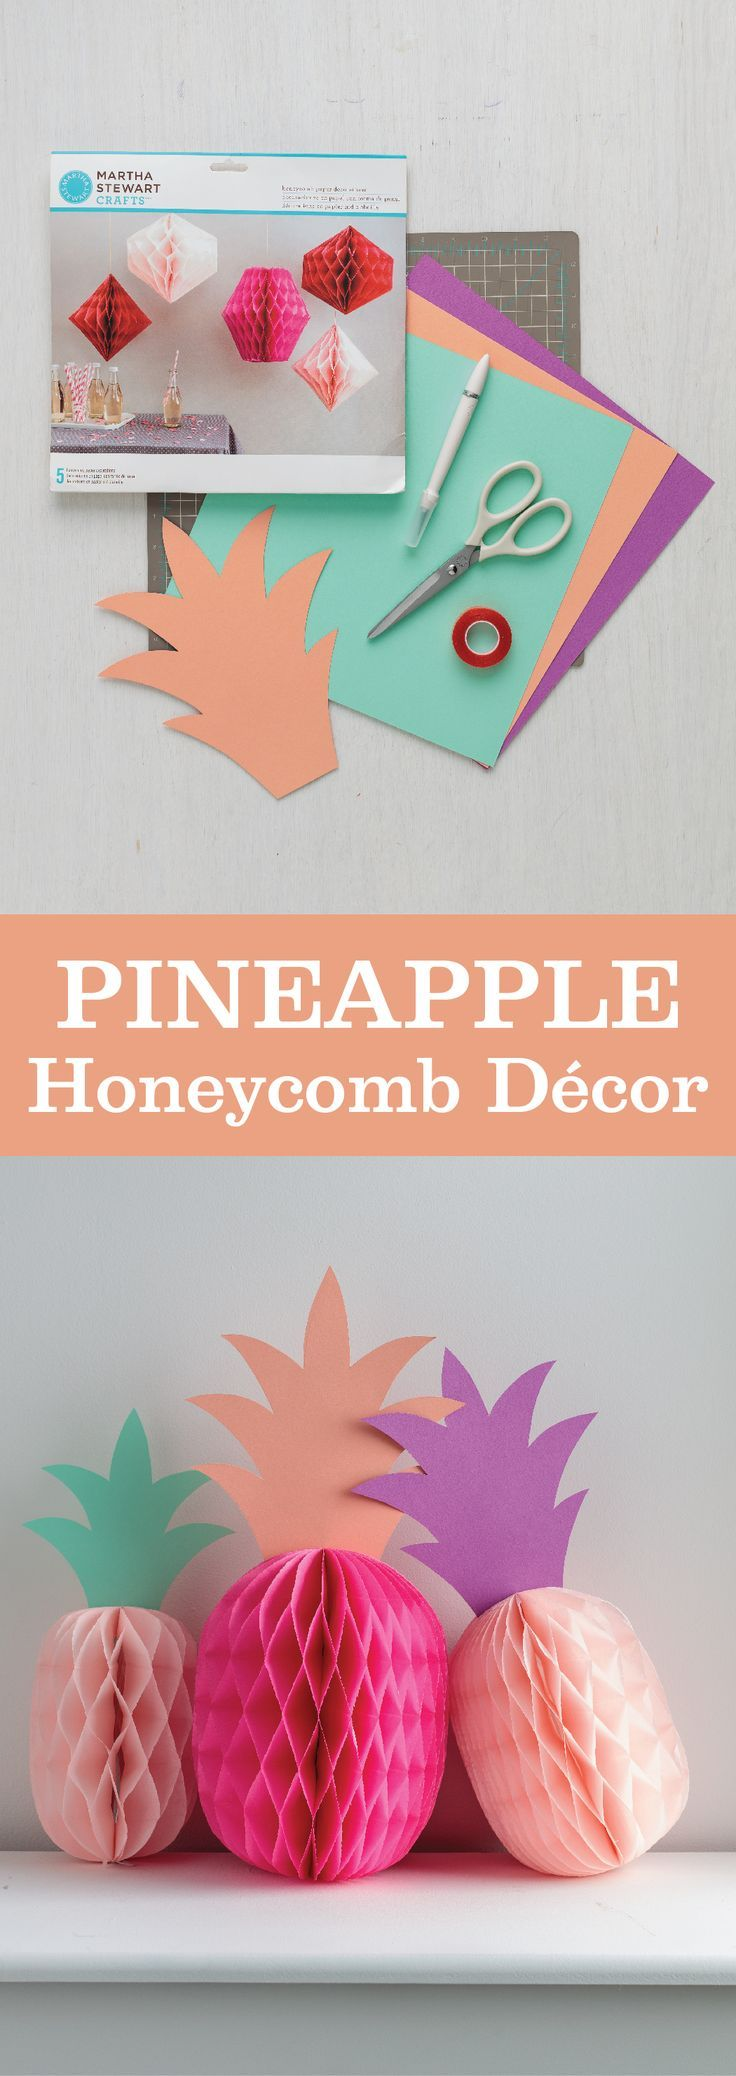 Trim Honeycomb Décor And Cardstock Into Adorable Pineles For A Tropical Themed Party